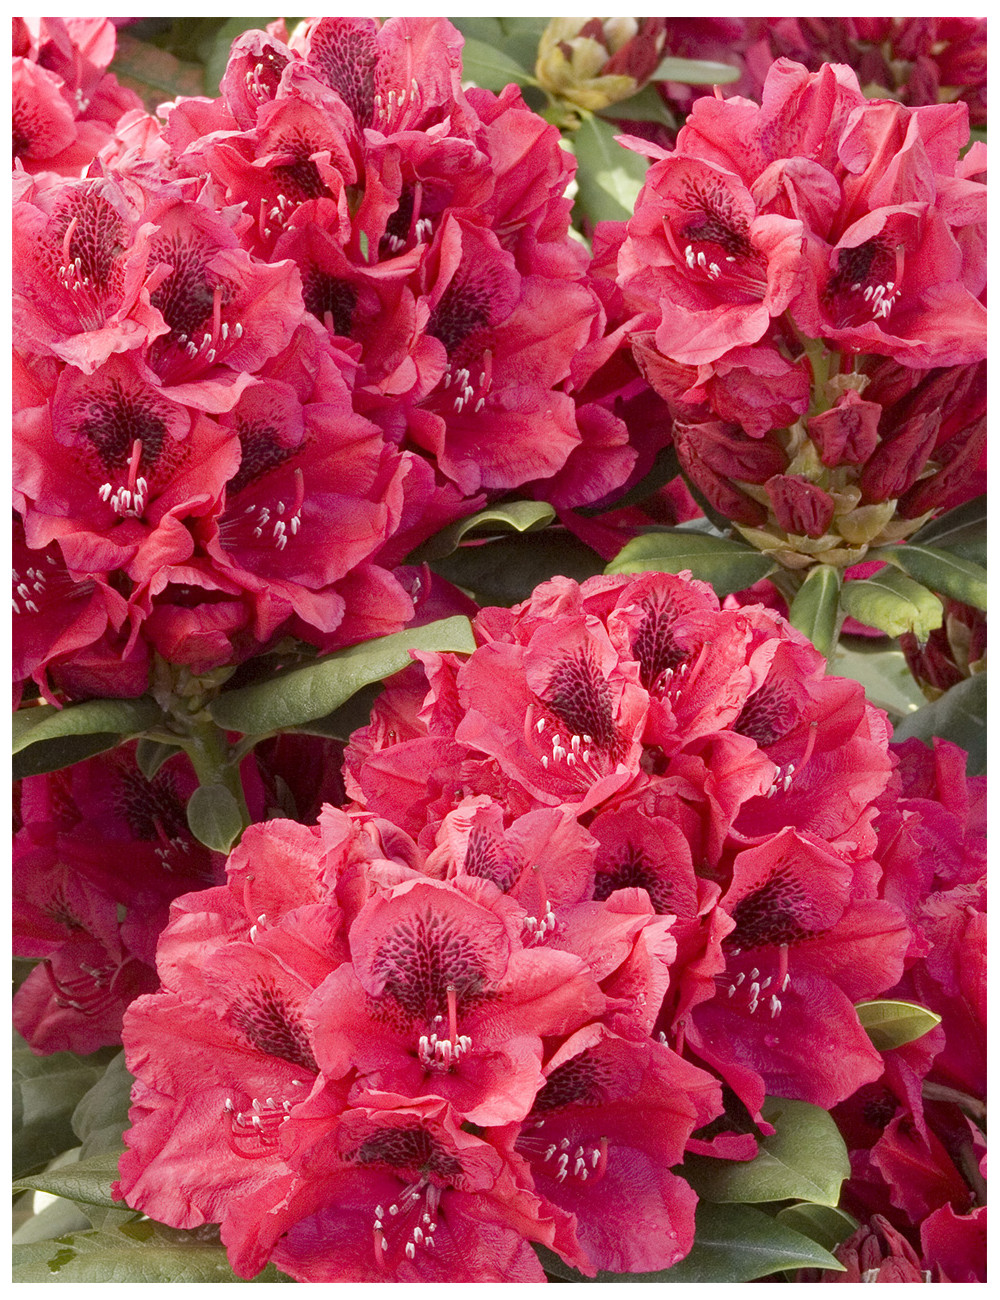 RHODODENDRON hybride LORD ROBERTS (Rhododendron)